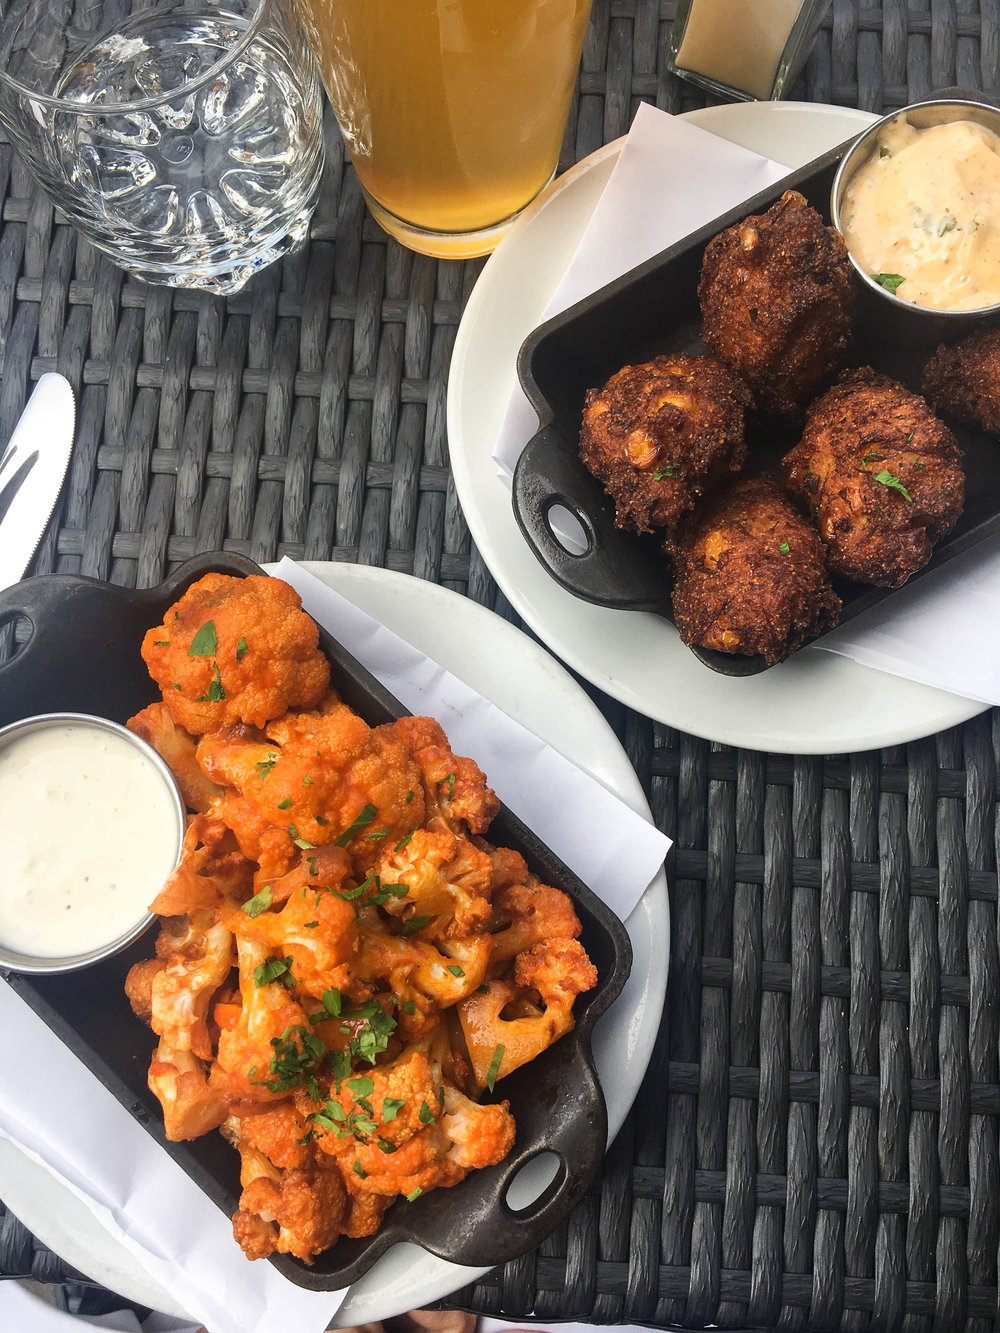 Crab and corn fritters and buffalo cauliflower with my brother and SIL in Boston at Union Oyster House